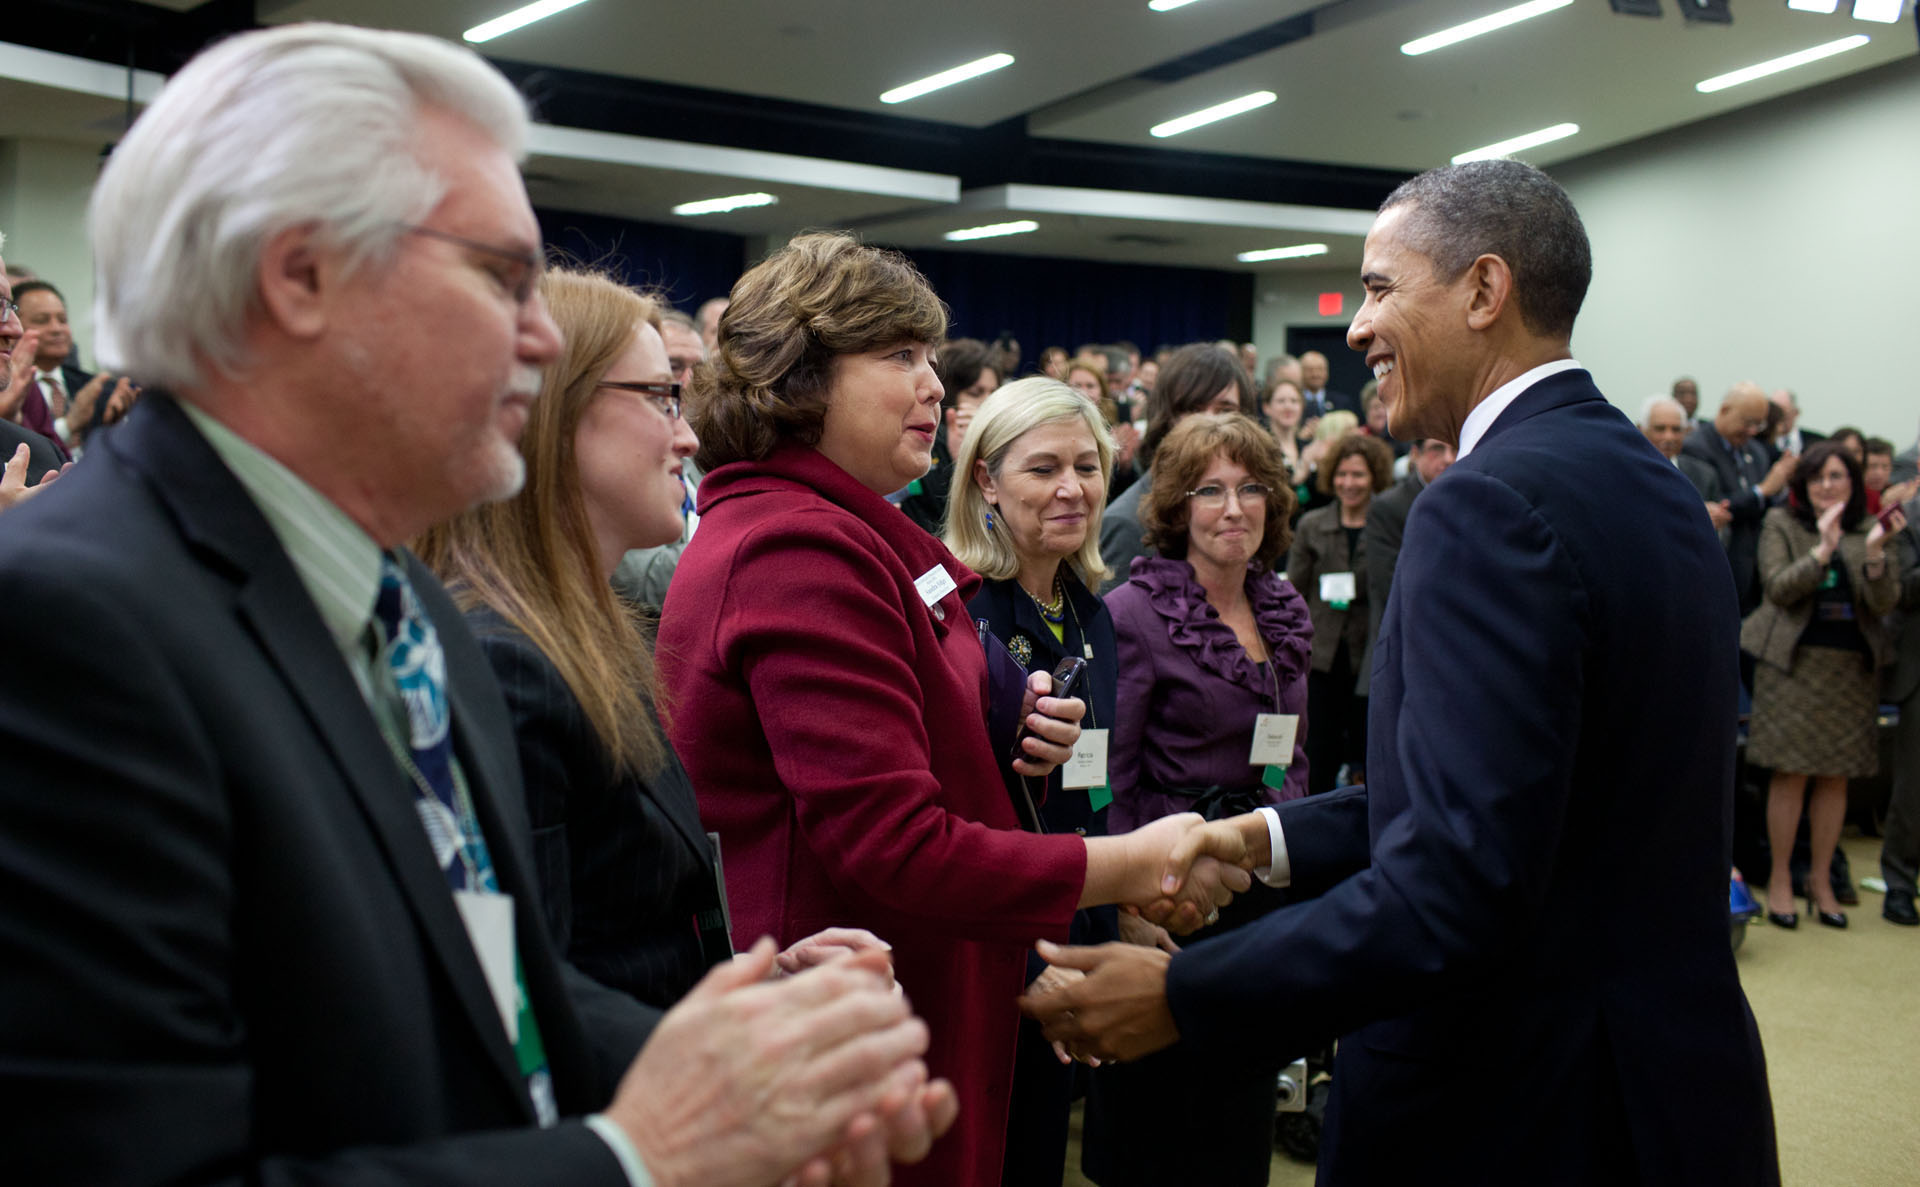 President Barack Obama drops by The Arc community leaders briefing (February 10, 2012)